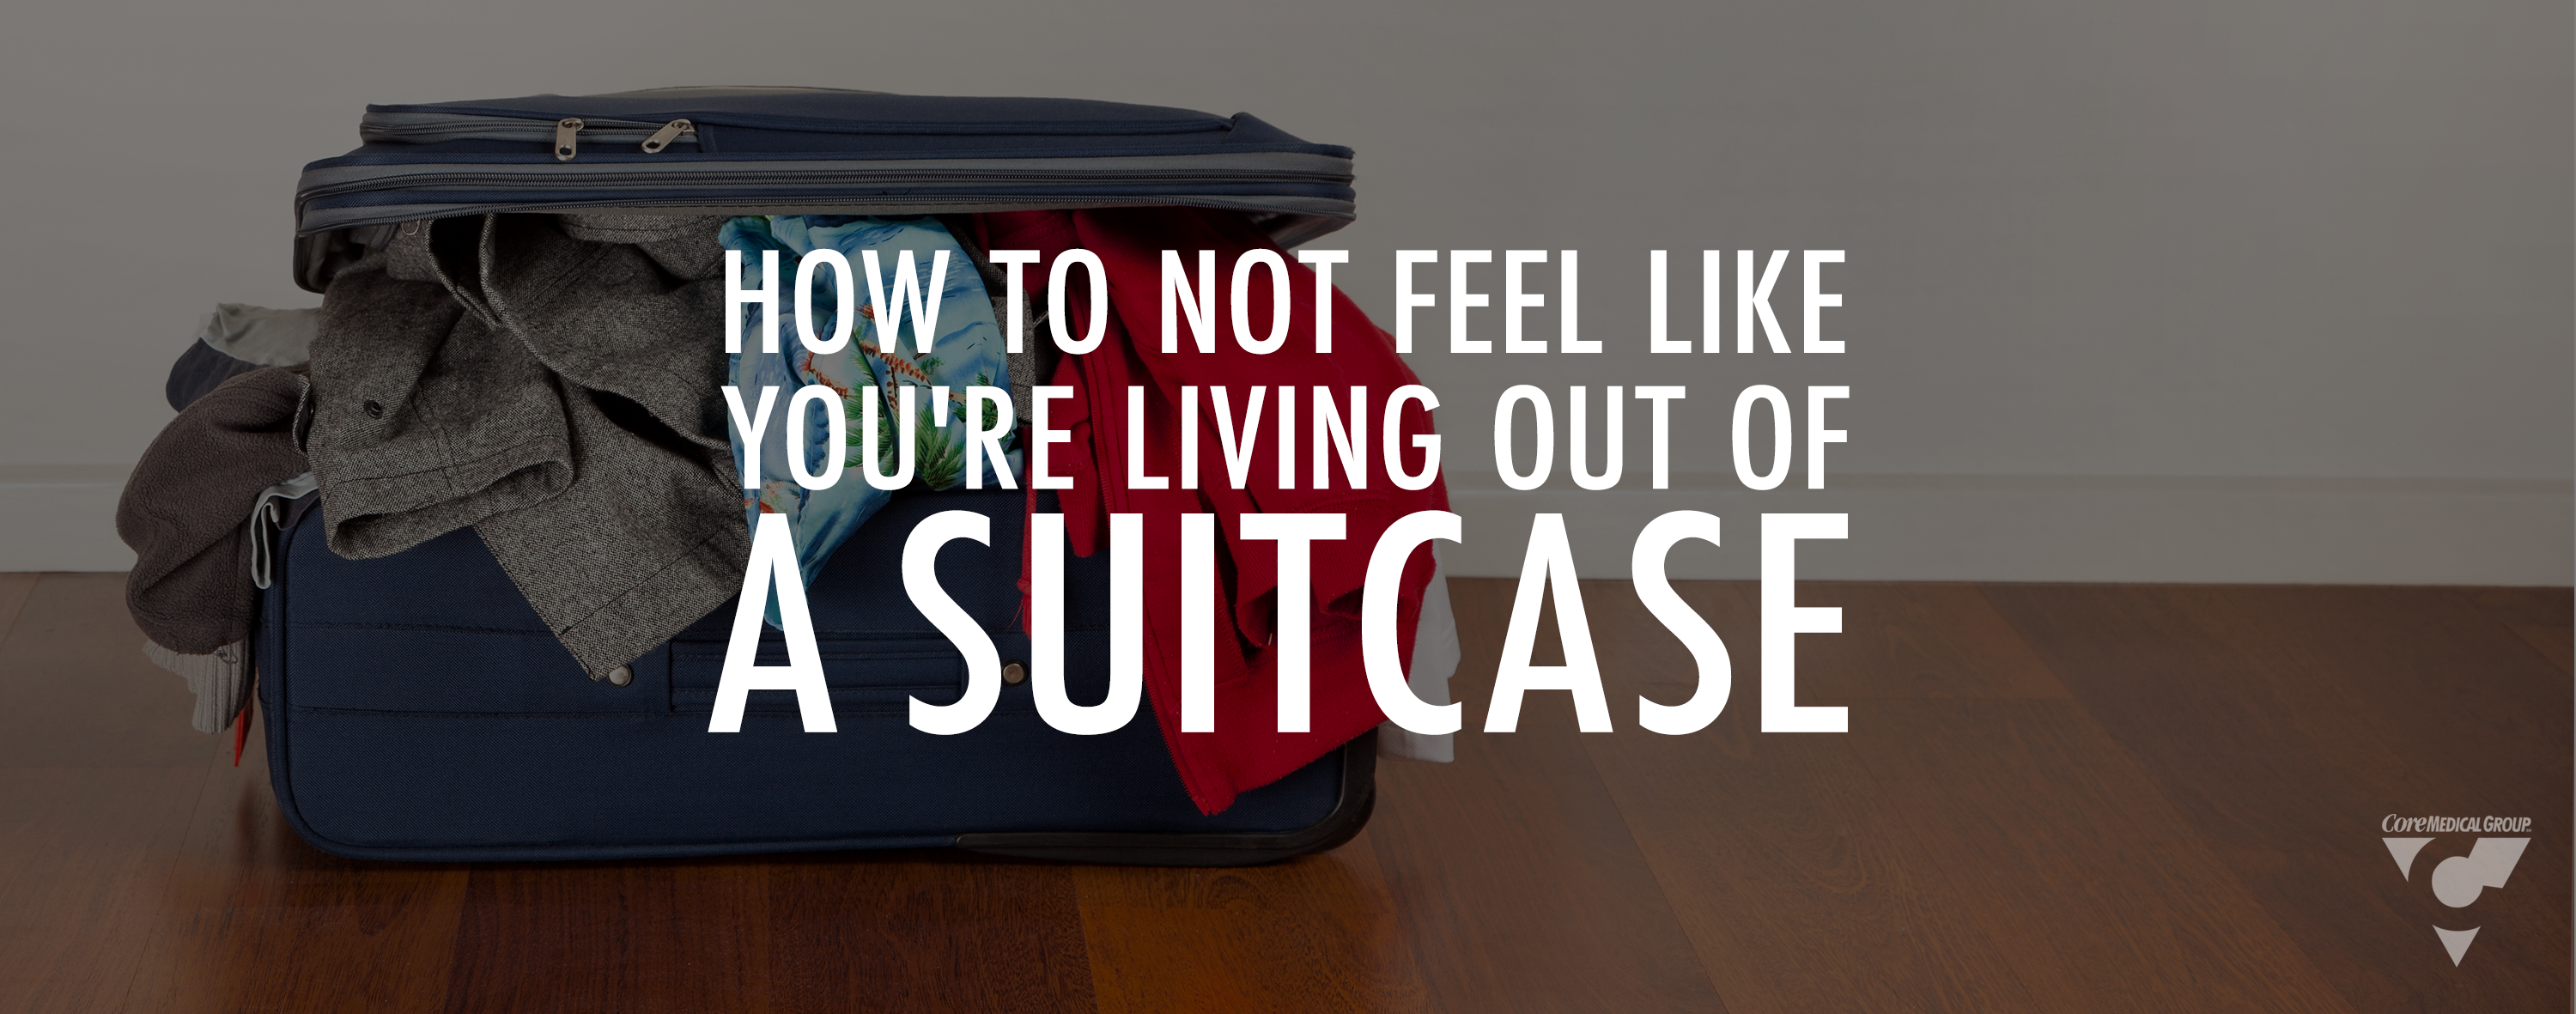 How to Not Feel Like You're Living Out of a Suitcase